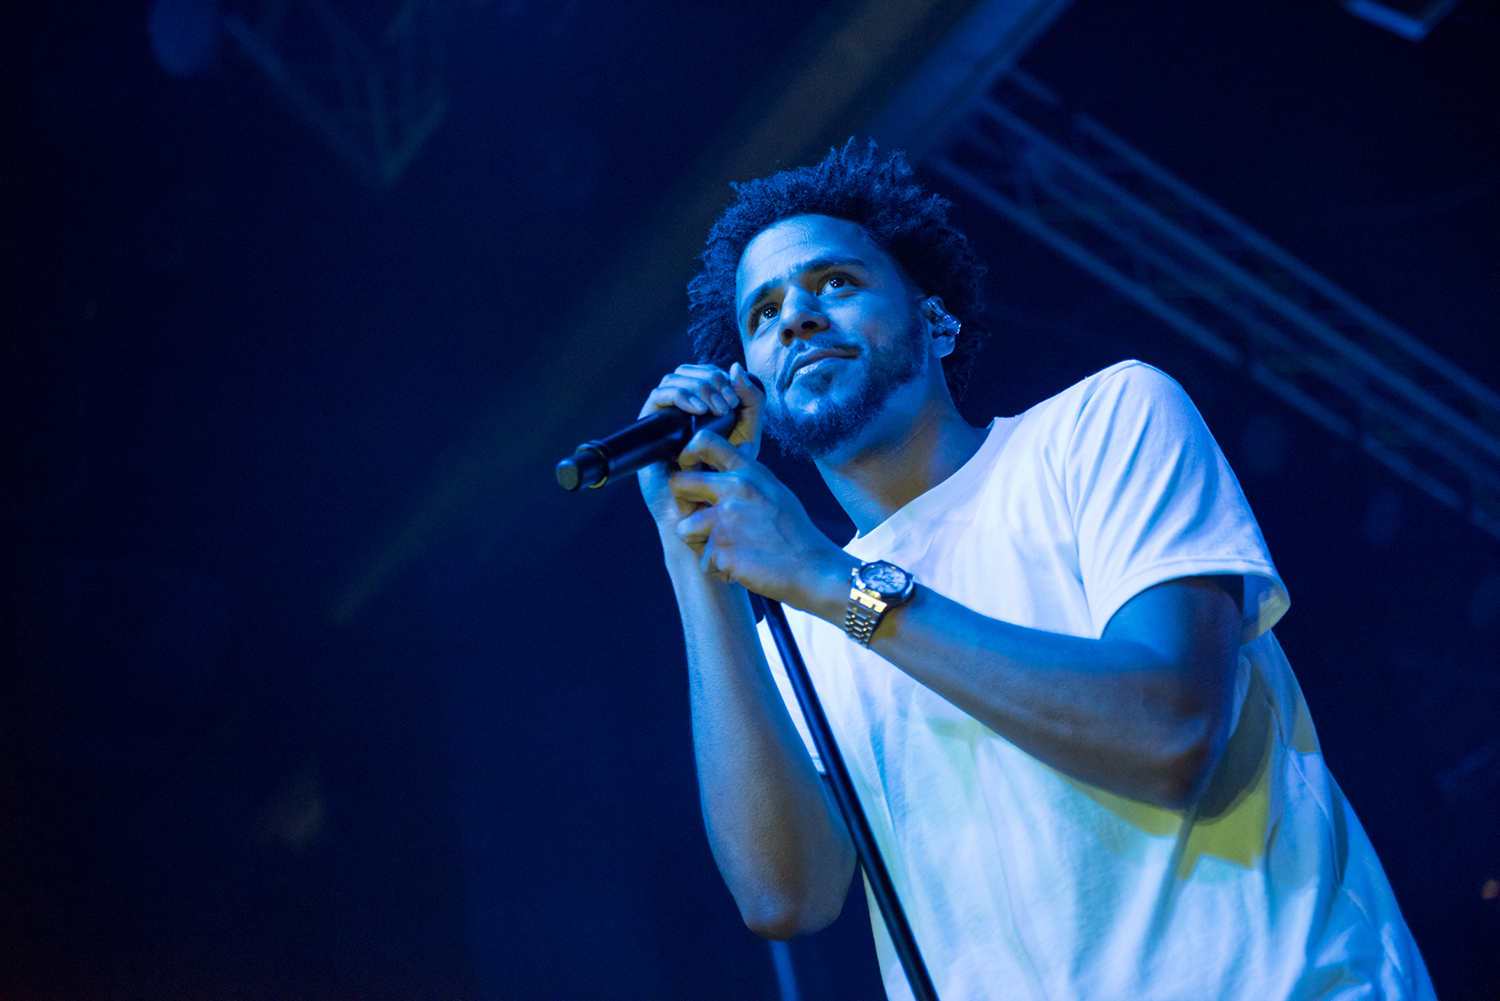 """Listen to J. Cole's Newest Single """"Folgers Crystals"""" Now"""